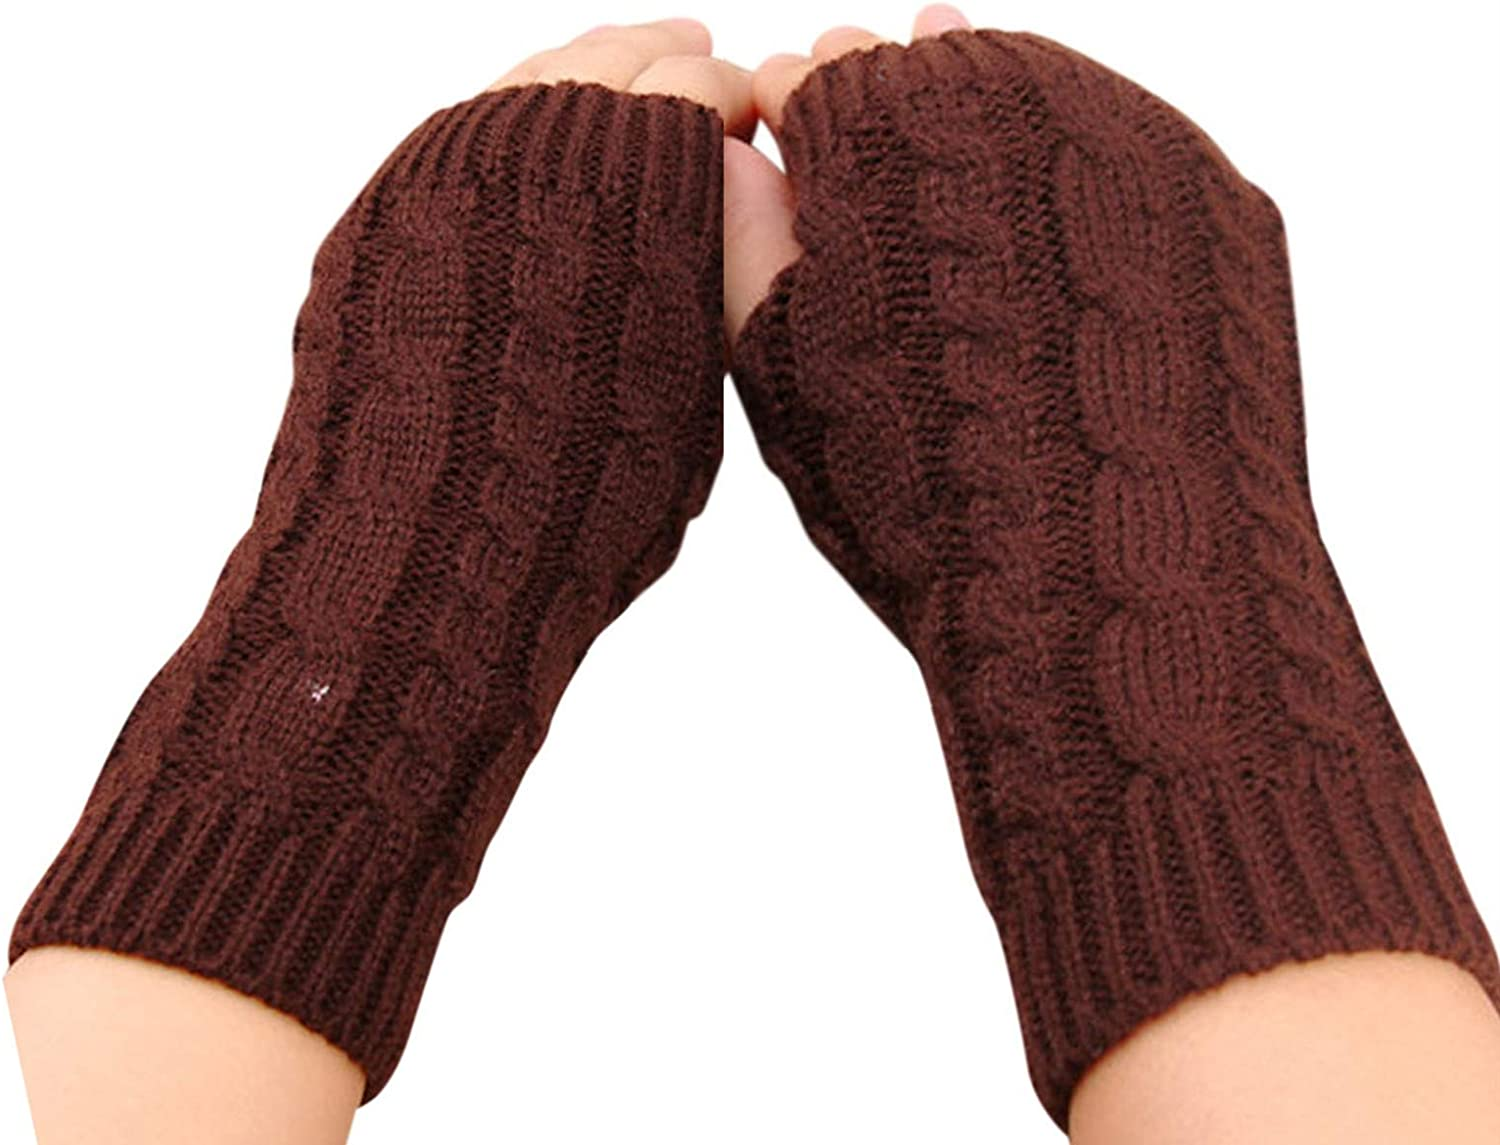 Half Finger Flat Gloves for Women Winter Knitted Stretch Fingerless Keep Warm Mitten Riding Gloves with Mobile Phone